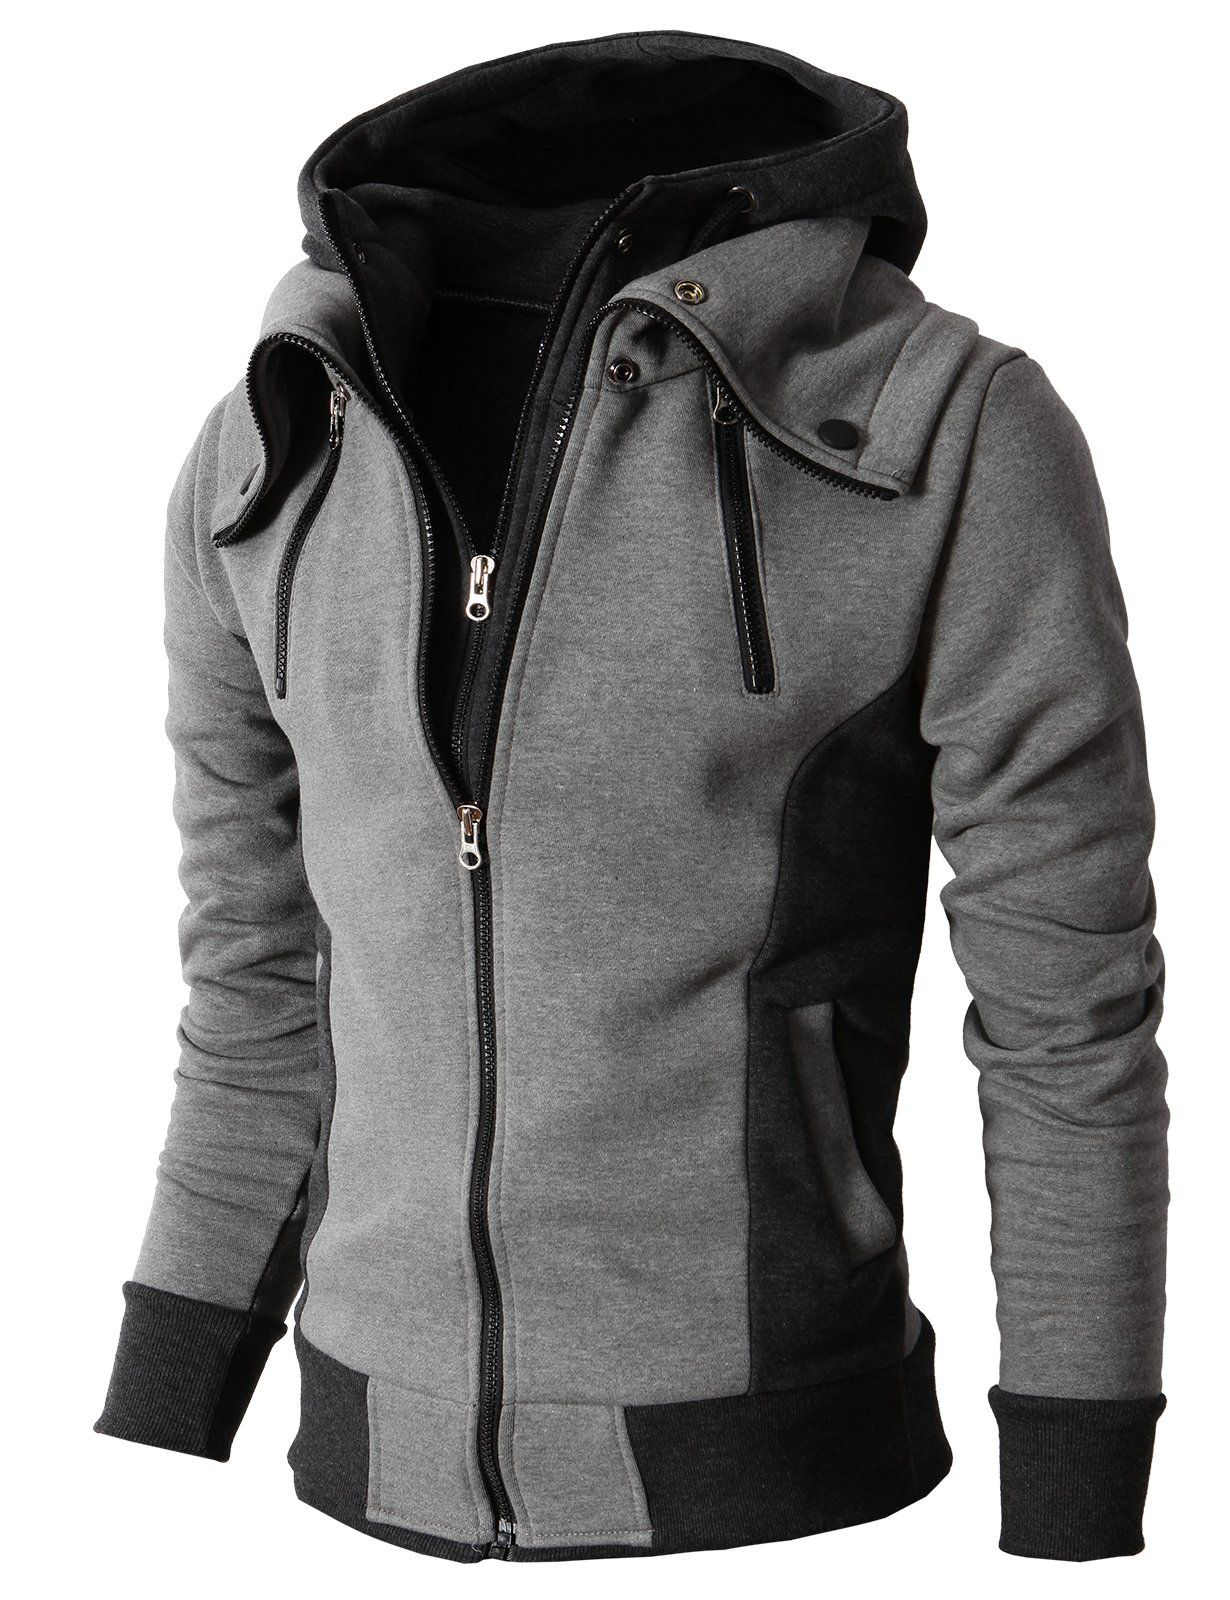 H2H Mens Casual High-neck Hoodie Zip-up with Double Zipper Details GRAY US  M Asia L (KMOHOL013) fdd19581b232